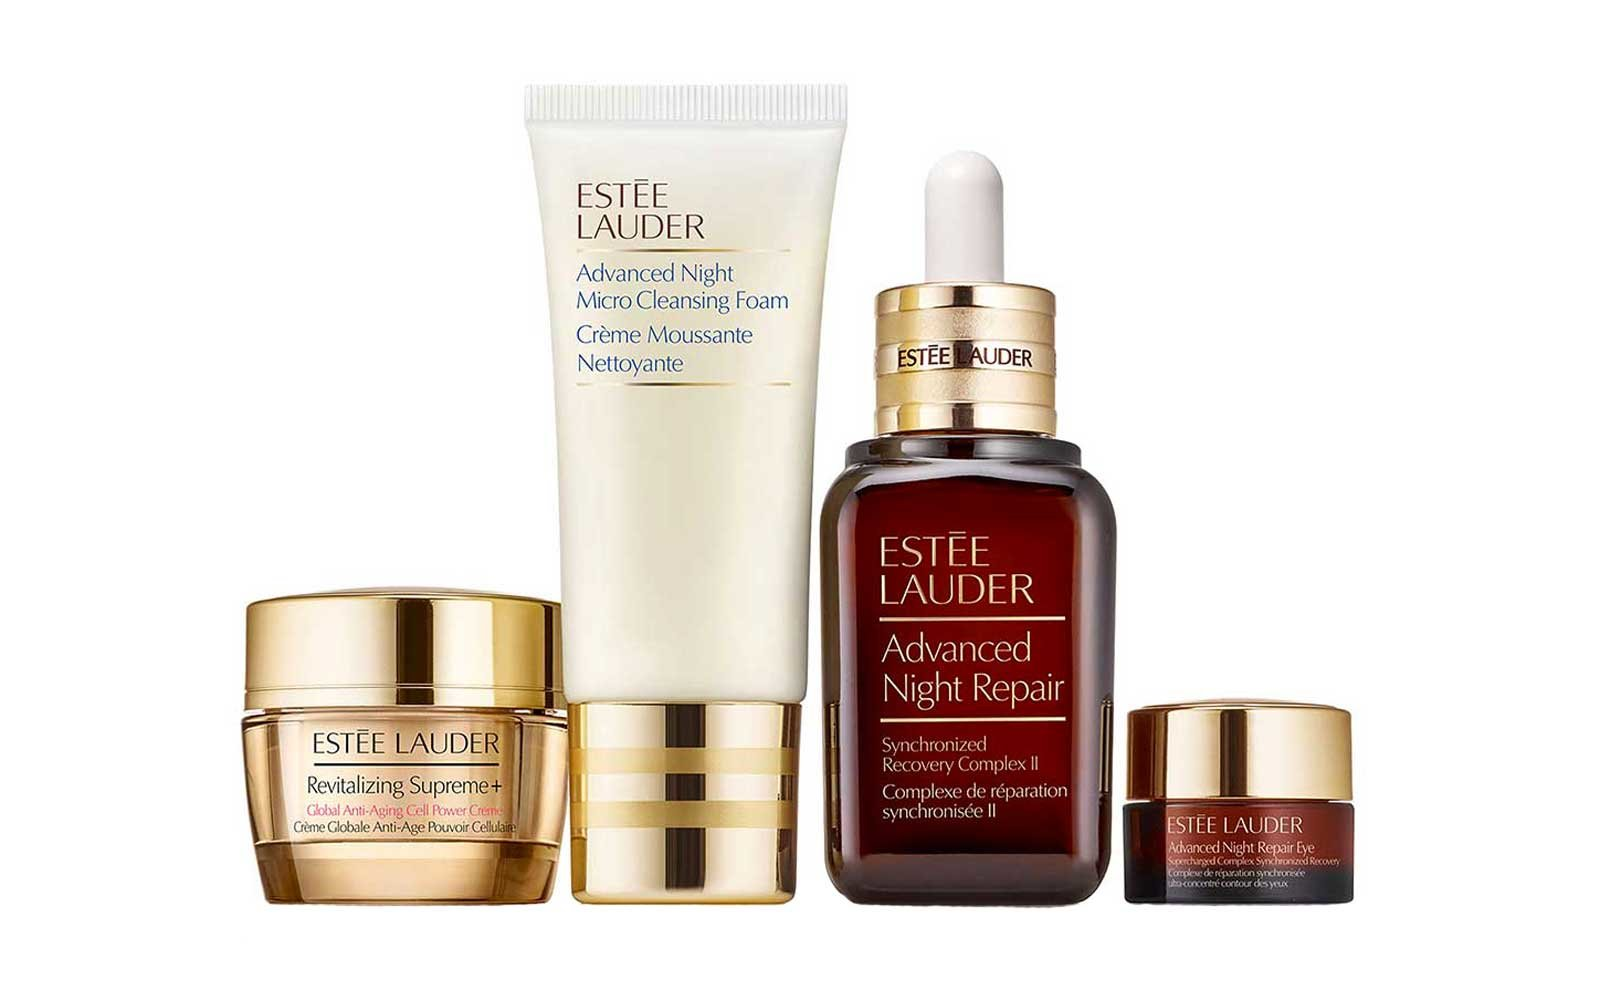 Estes Lauder Advanced Night Repair set